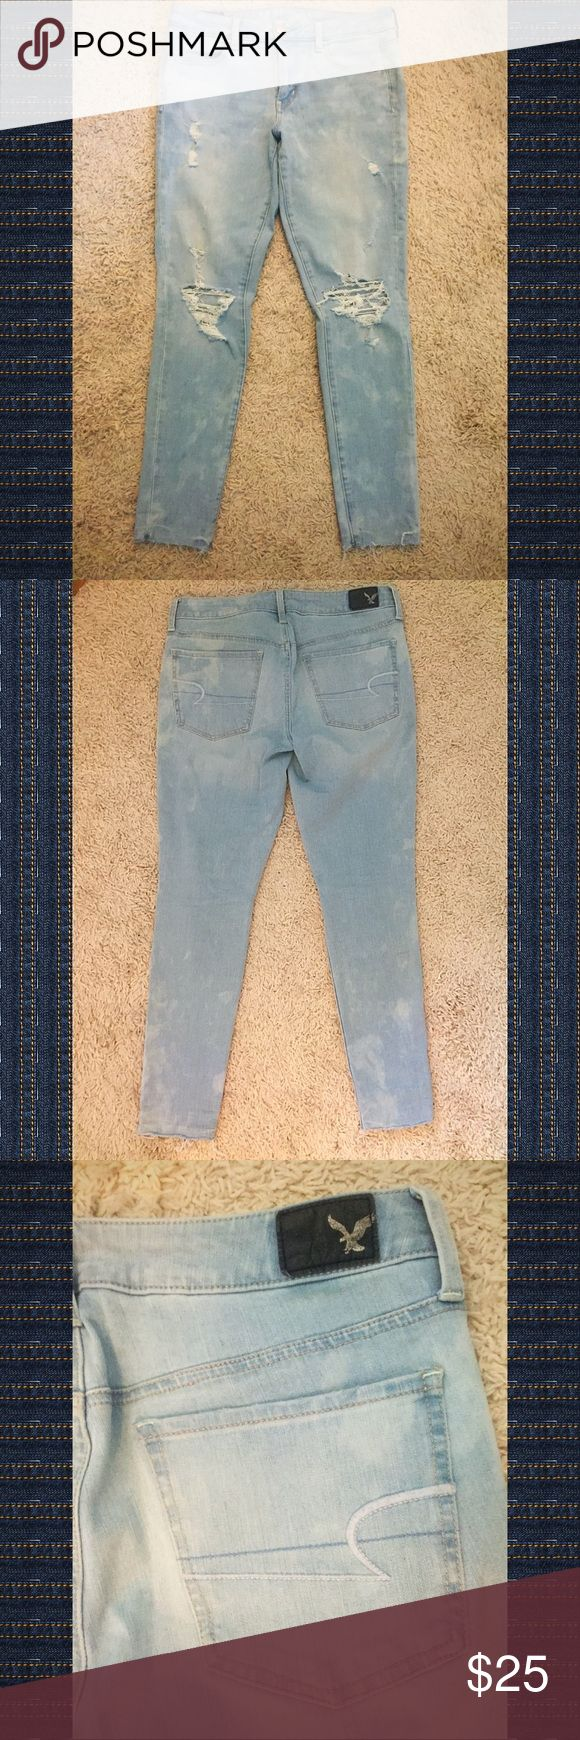 AMERICAN EAGLE, 360 Super Stretch distressed jeans AMERICAN EAGLE, 360 Super Stretch jeans, size 10 Short, distressed. Great used condition. American Eagle Outfitters Jeans Straight Leg